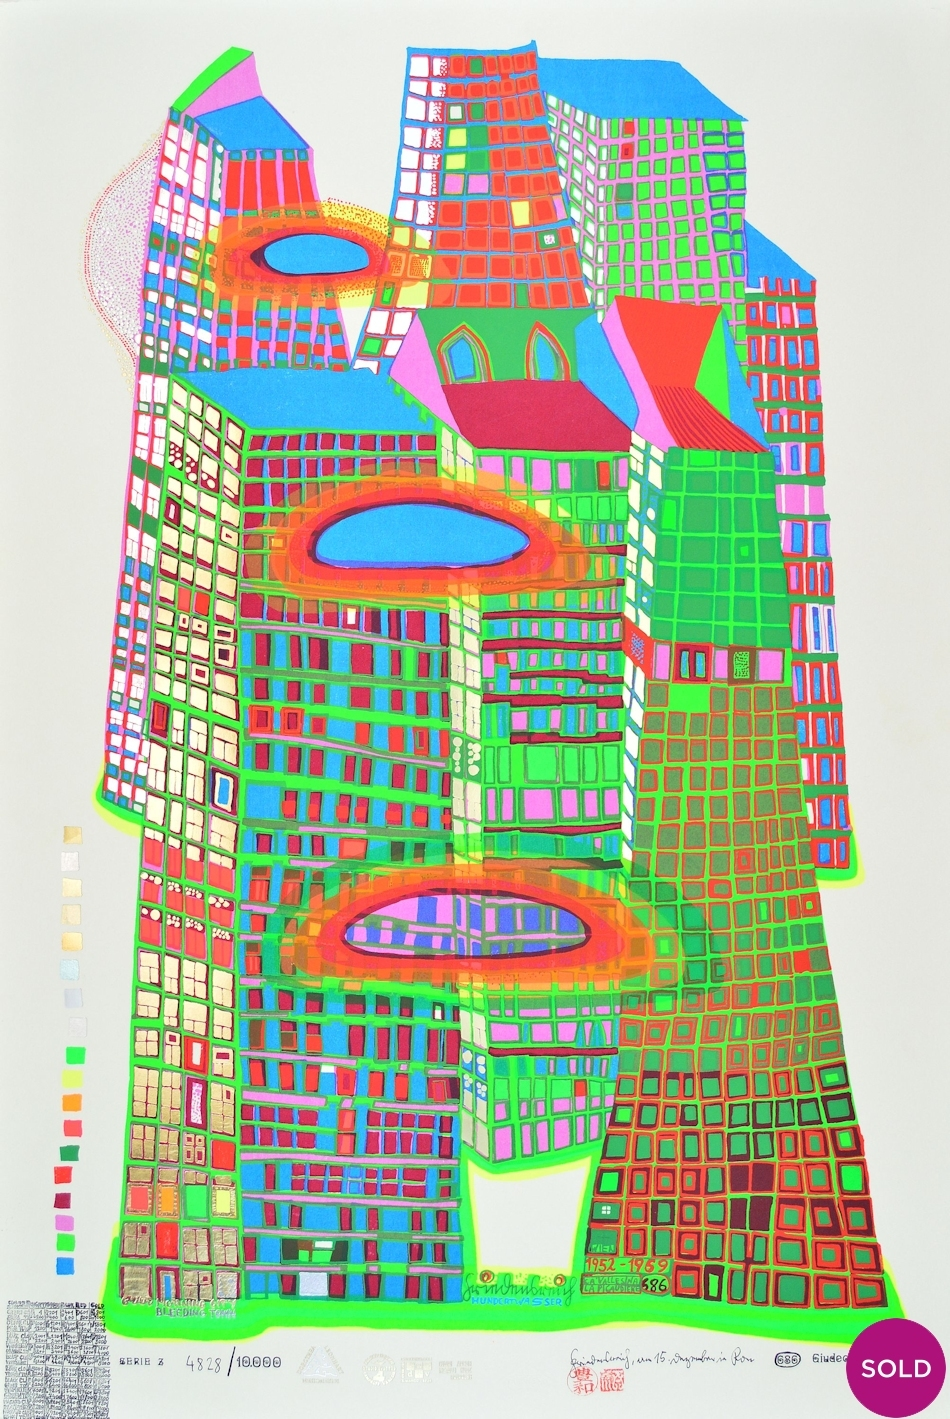 Siebdruck Kaufen Hundertwasser Good Morning City Grafik Kaufen I Artedio